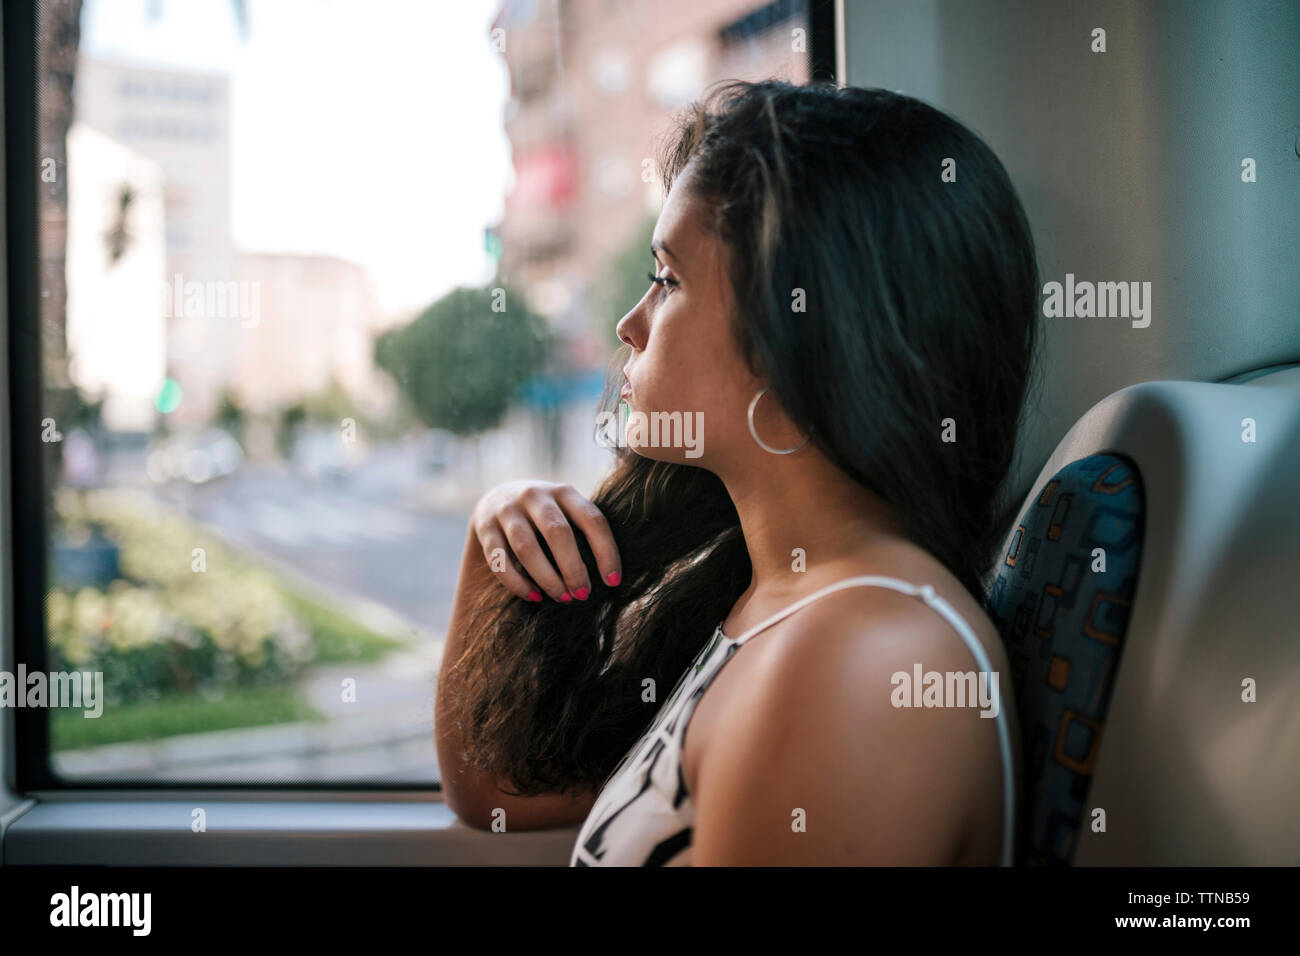 Side view of thoughtful serious woman looking through window while sitting in bus - Stock Image